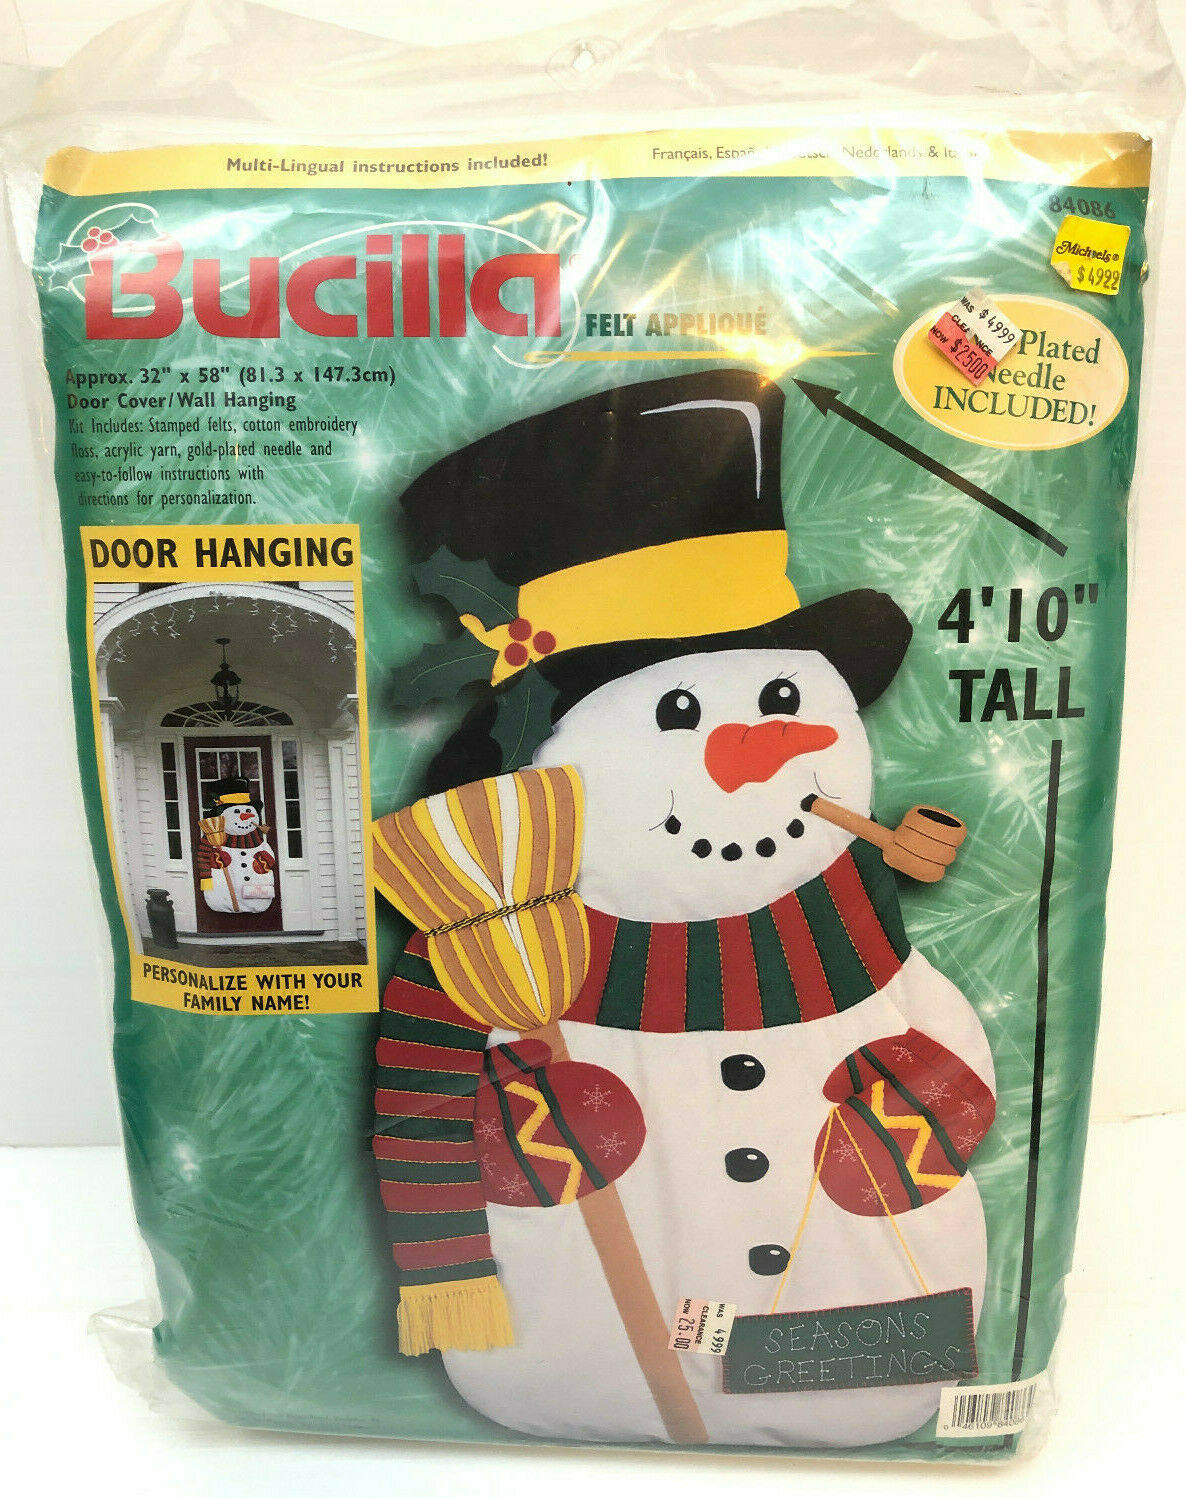 Primary image for Bucilla Xmas Snowman Door Hanging Kit Felt Applique Frosty Seasons Greetings